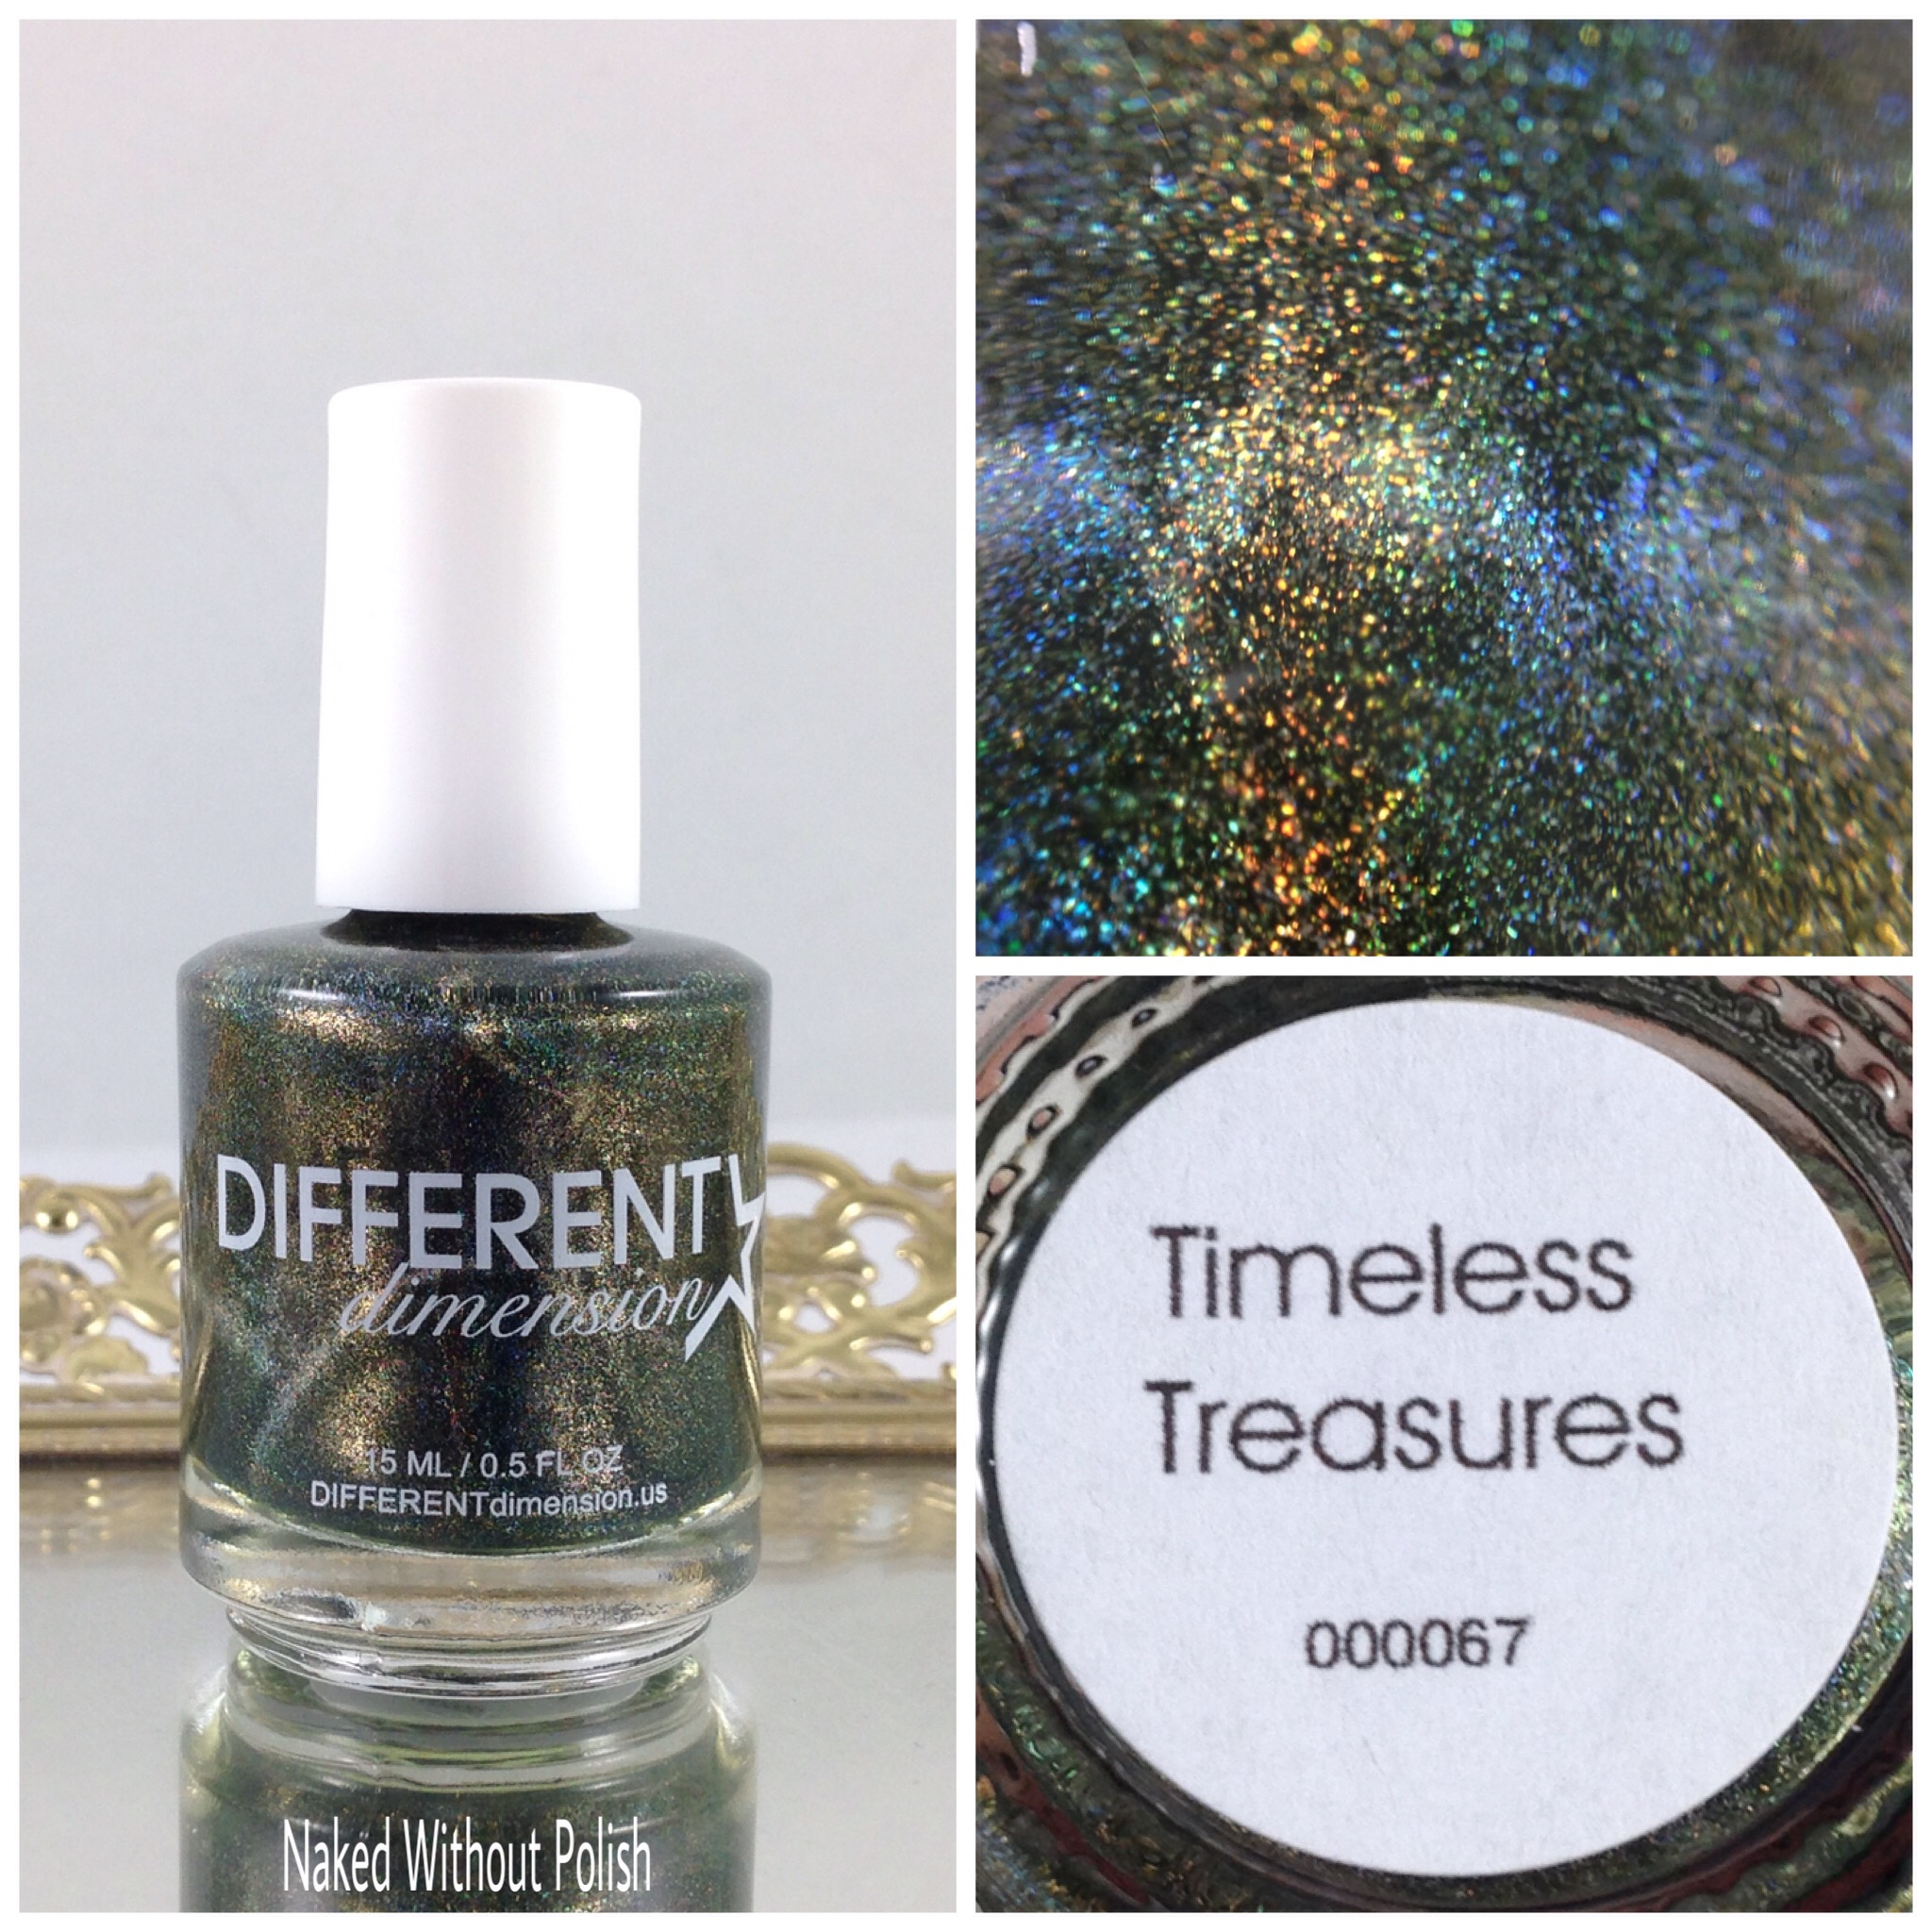 Different-Dimension-Timeless-Treasures-1